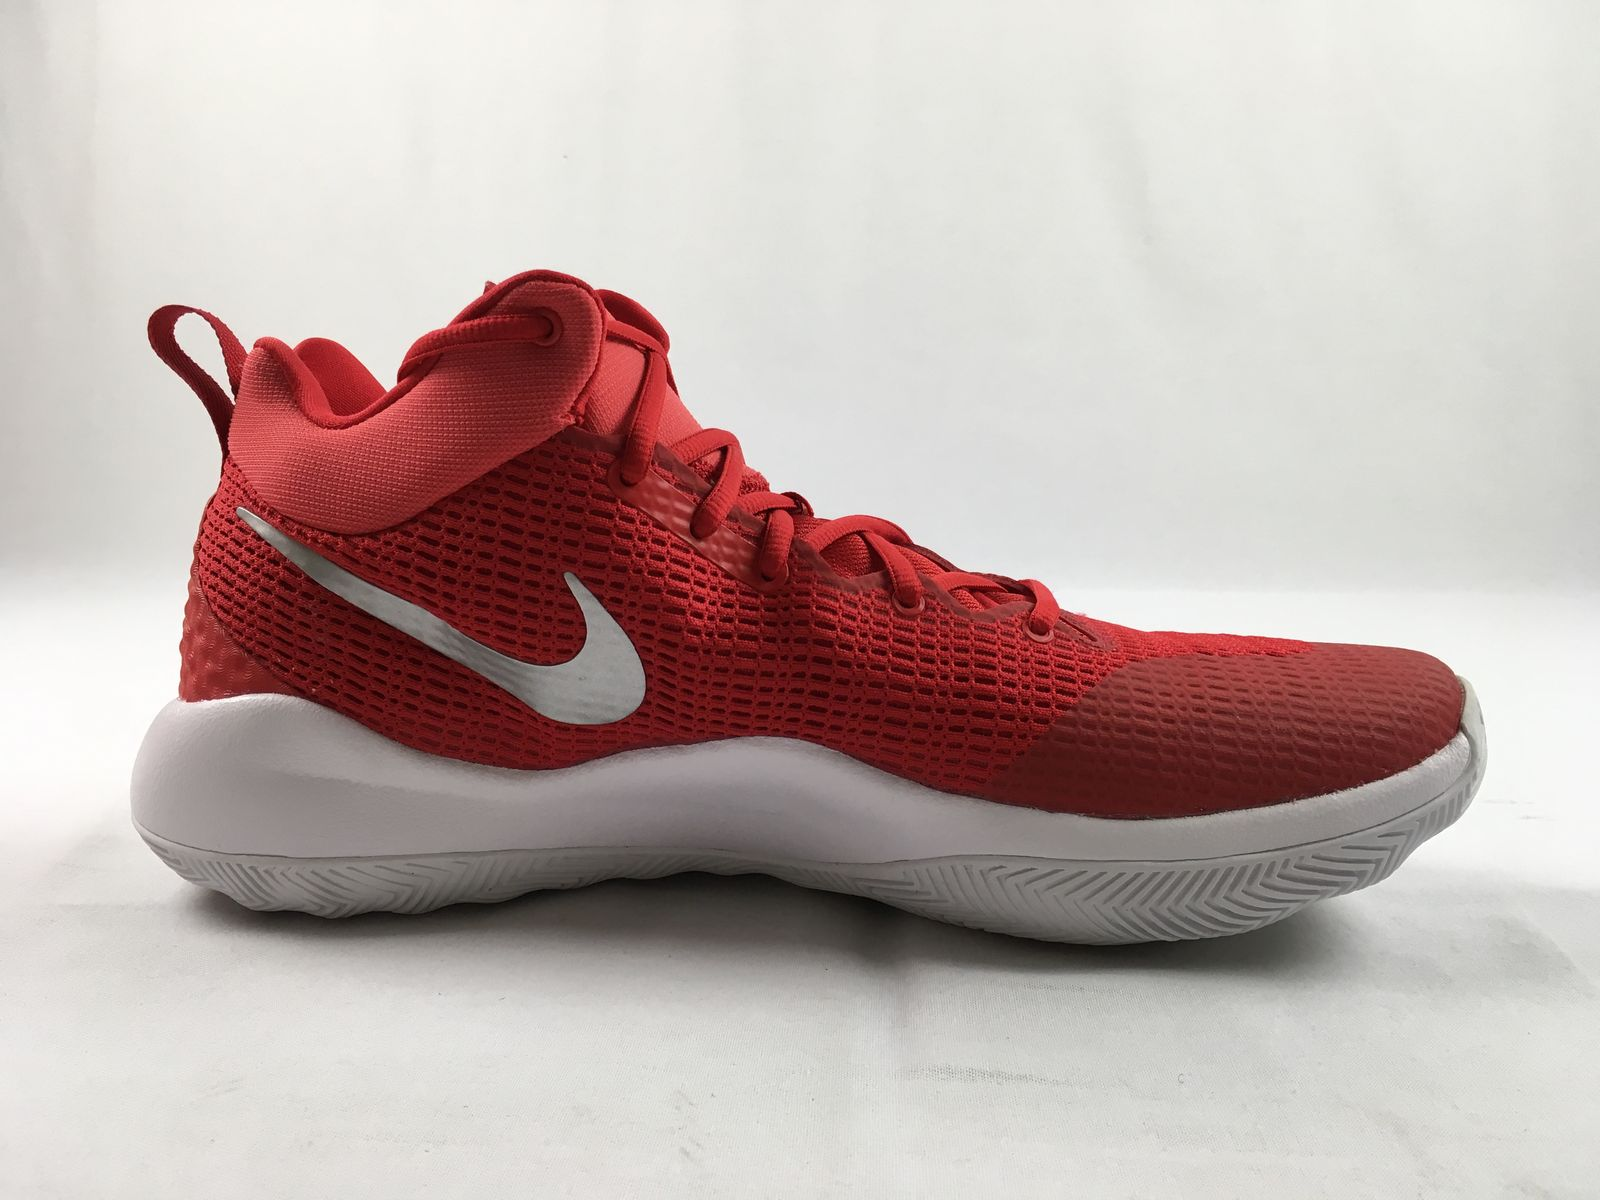 on sale f0b59 514c6 ... get new nike zoom rev red basketball shoes mens 15.5 0ca25 d1680